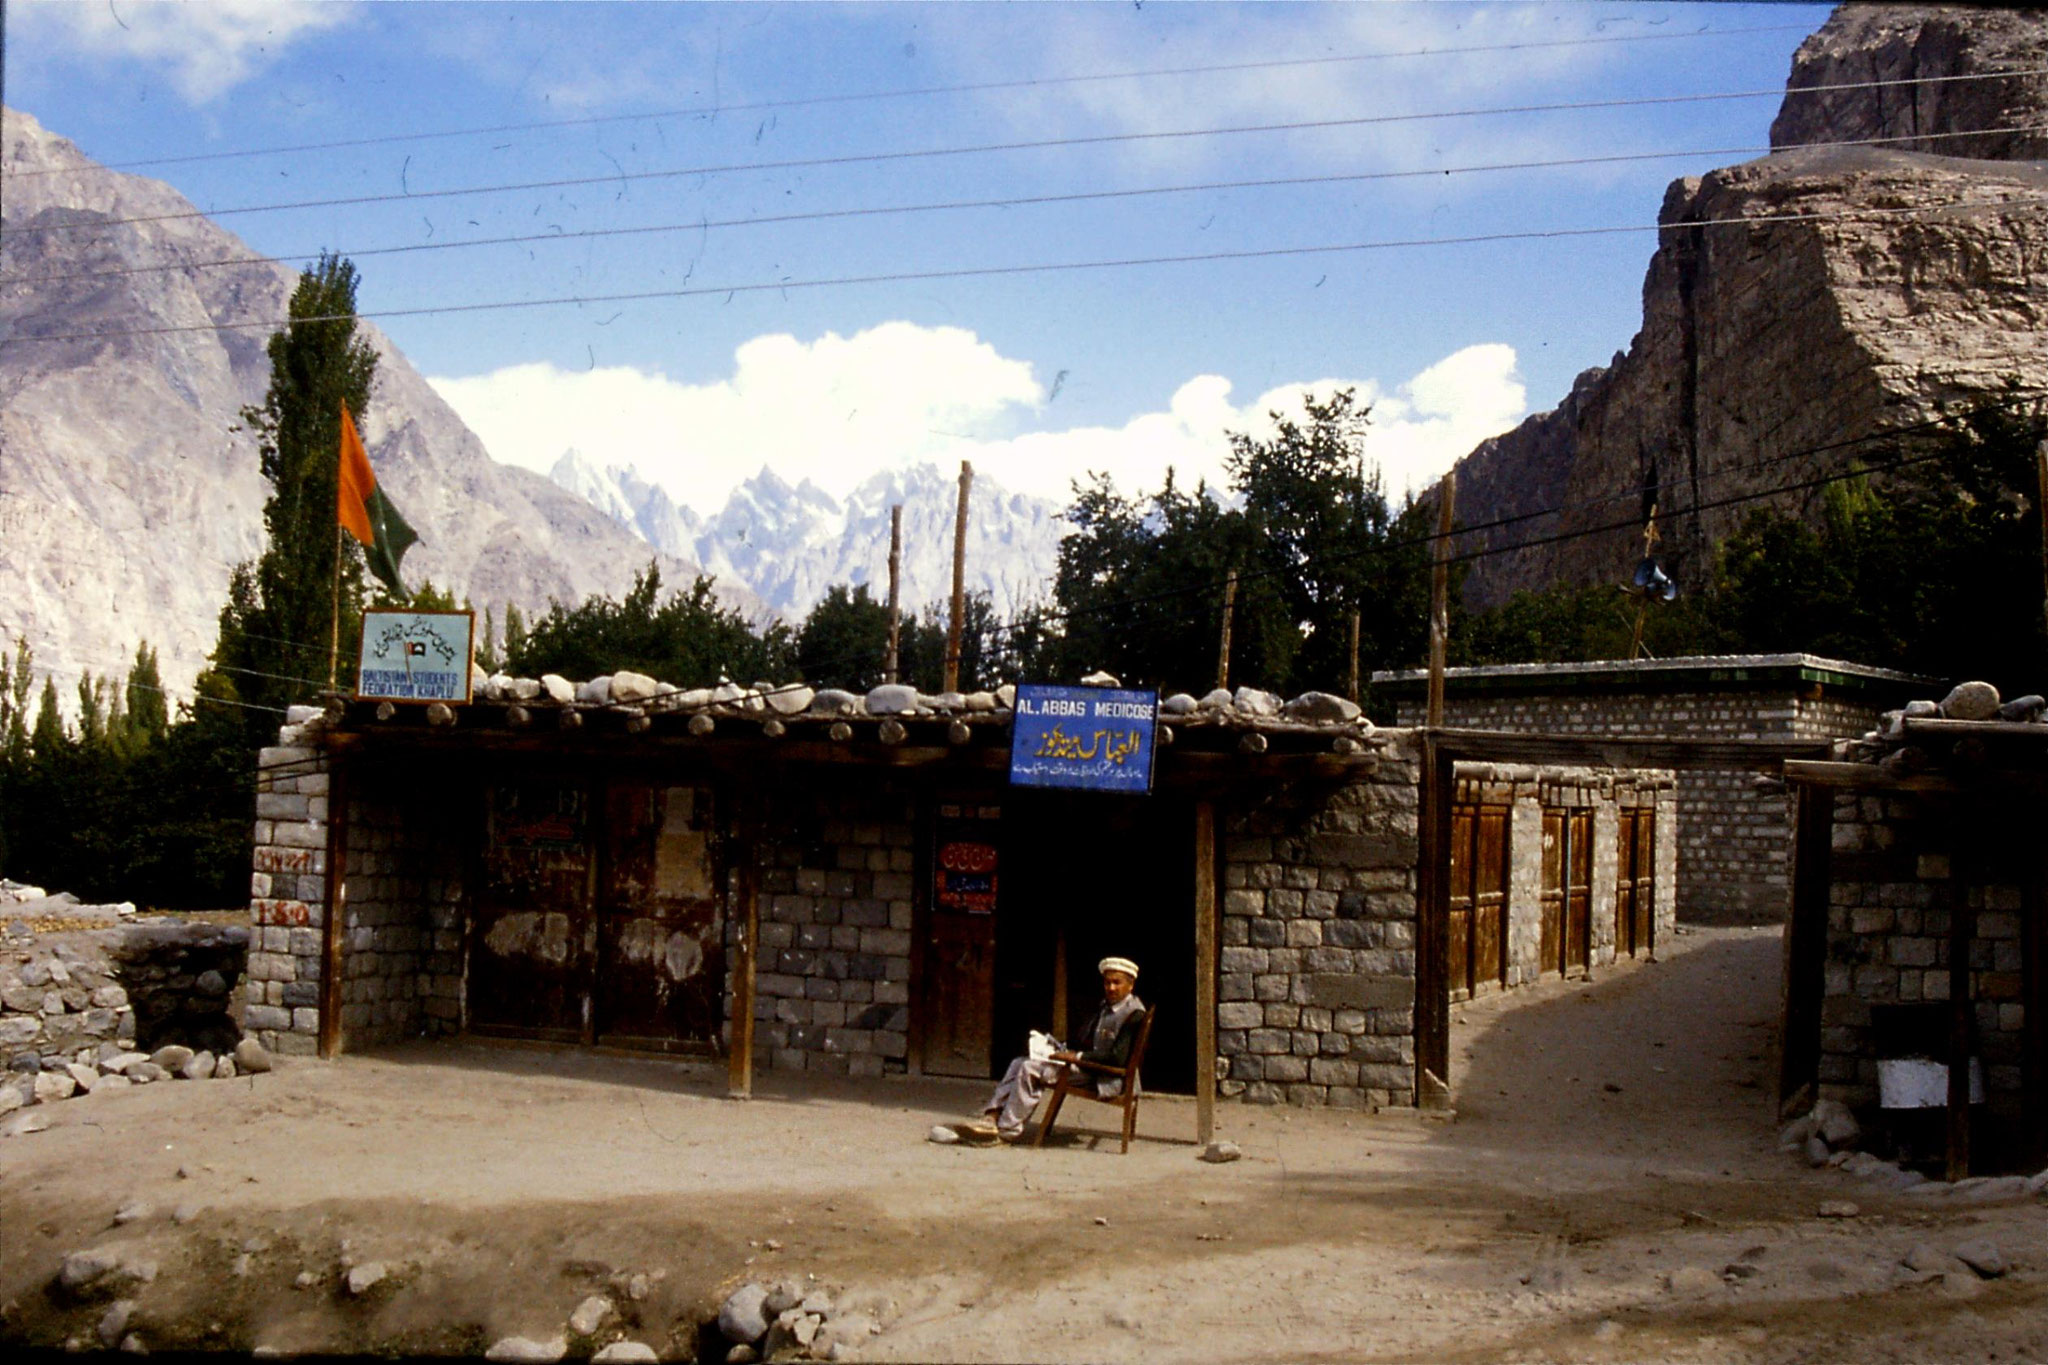 15/10/1989: 29: Khaplu, chemist at shop with PPP flag, mosque